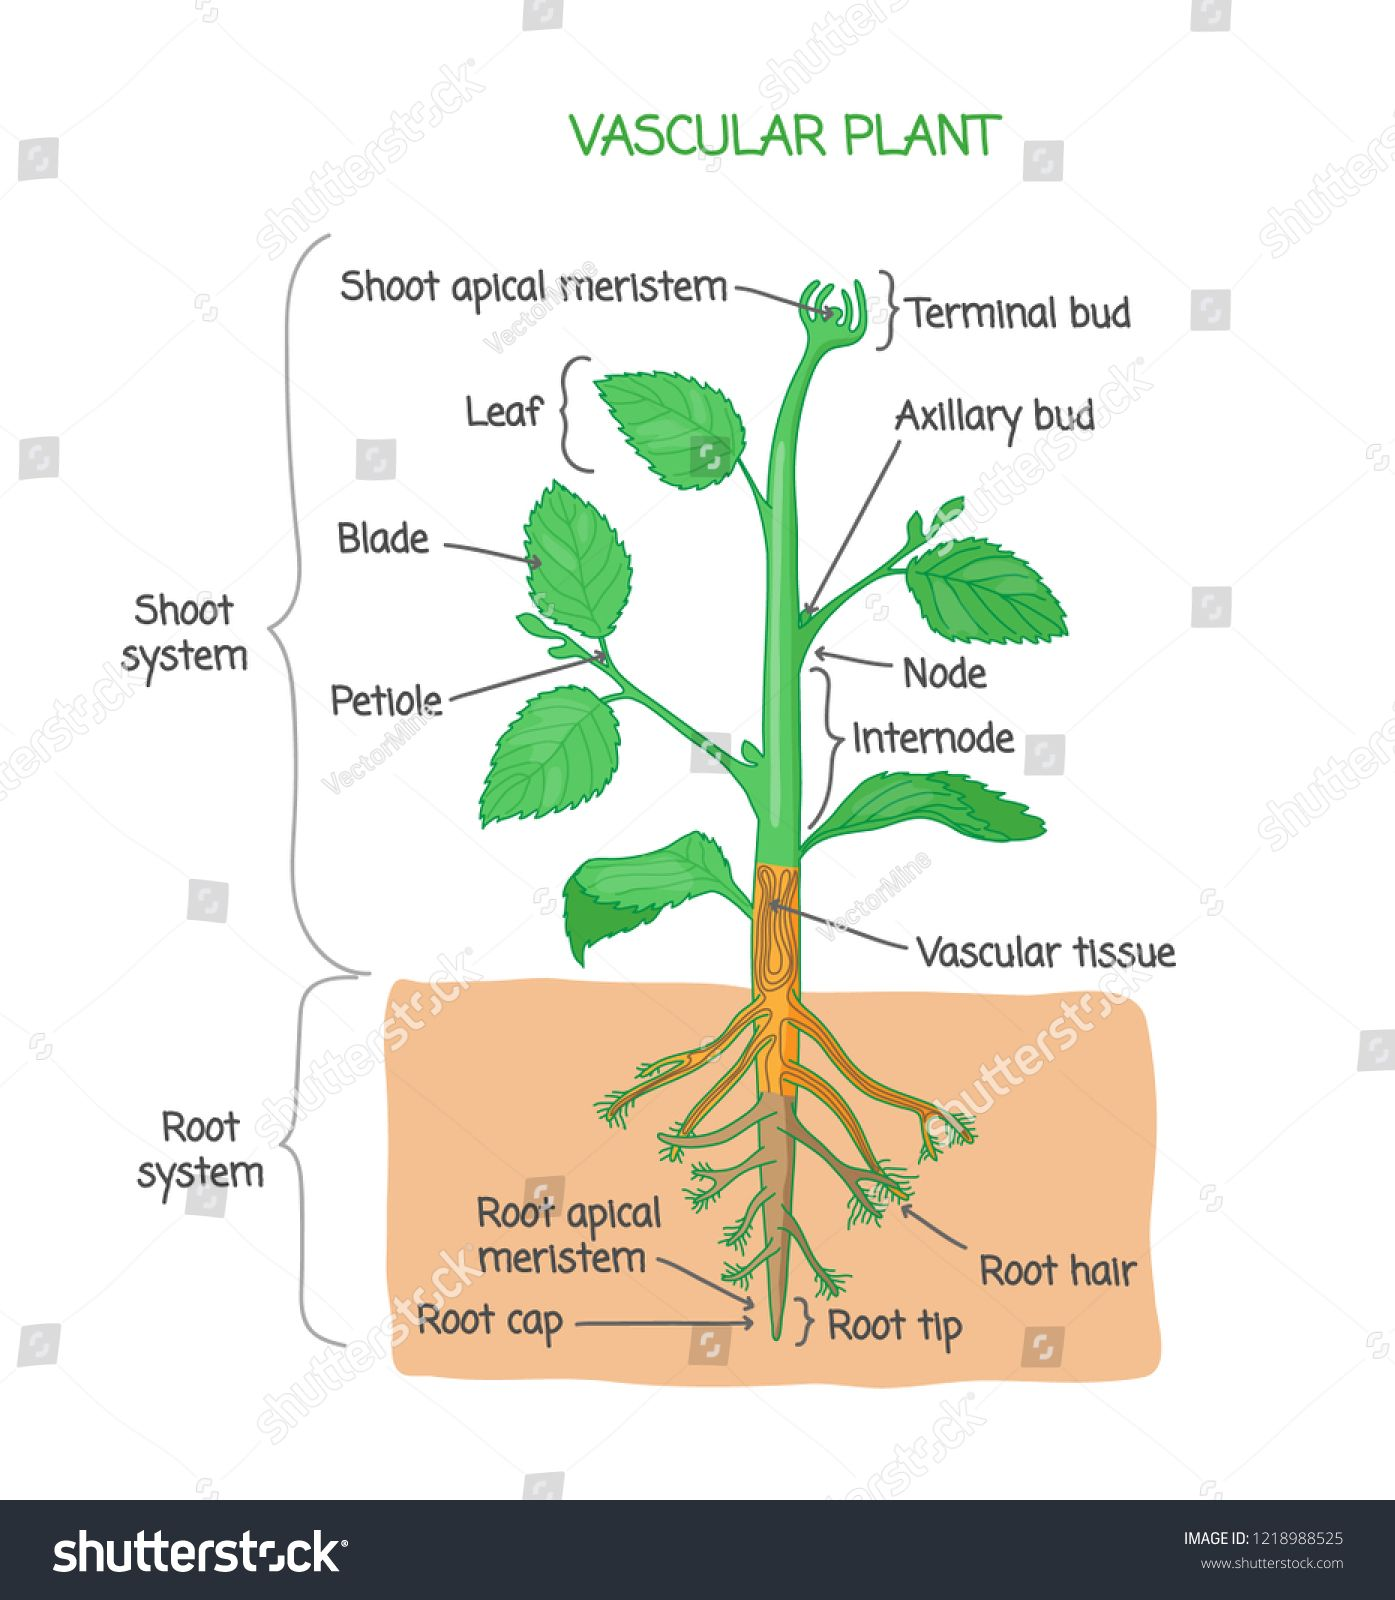 Vascular Plant Biological Structure Diagram With Labels